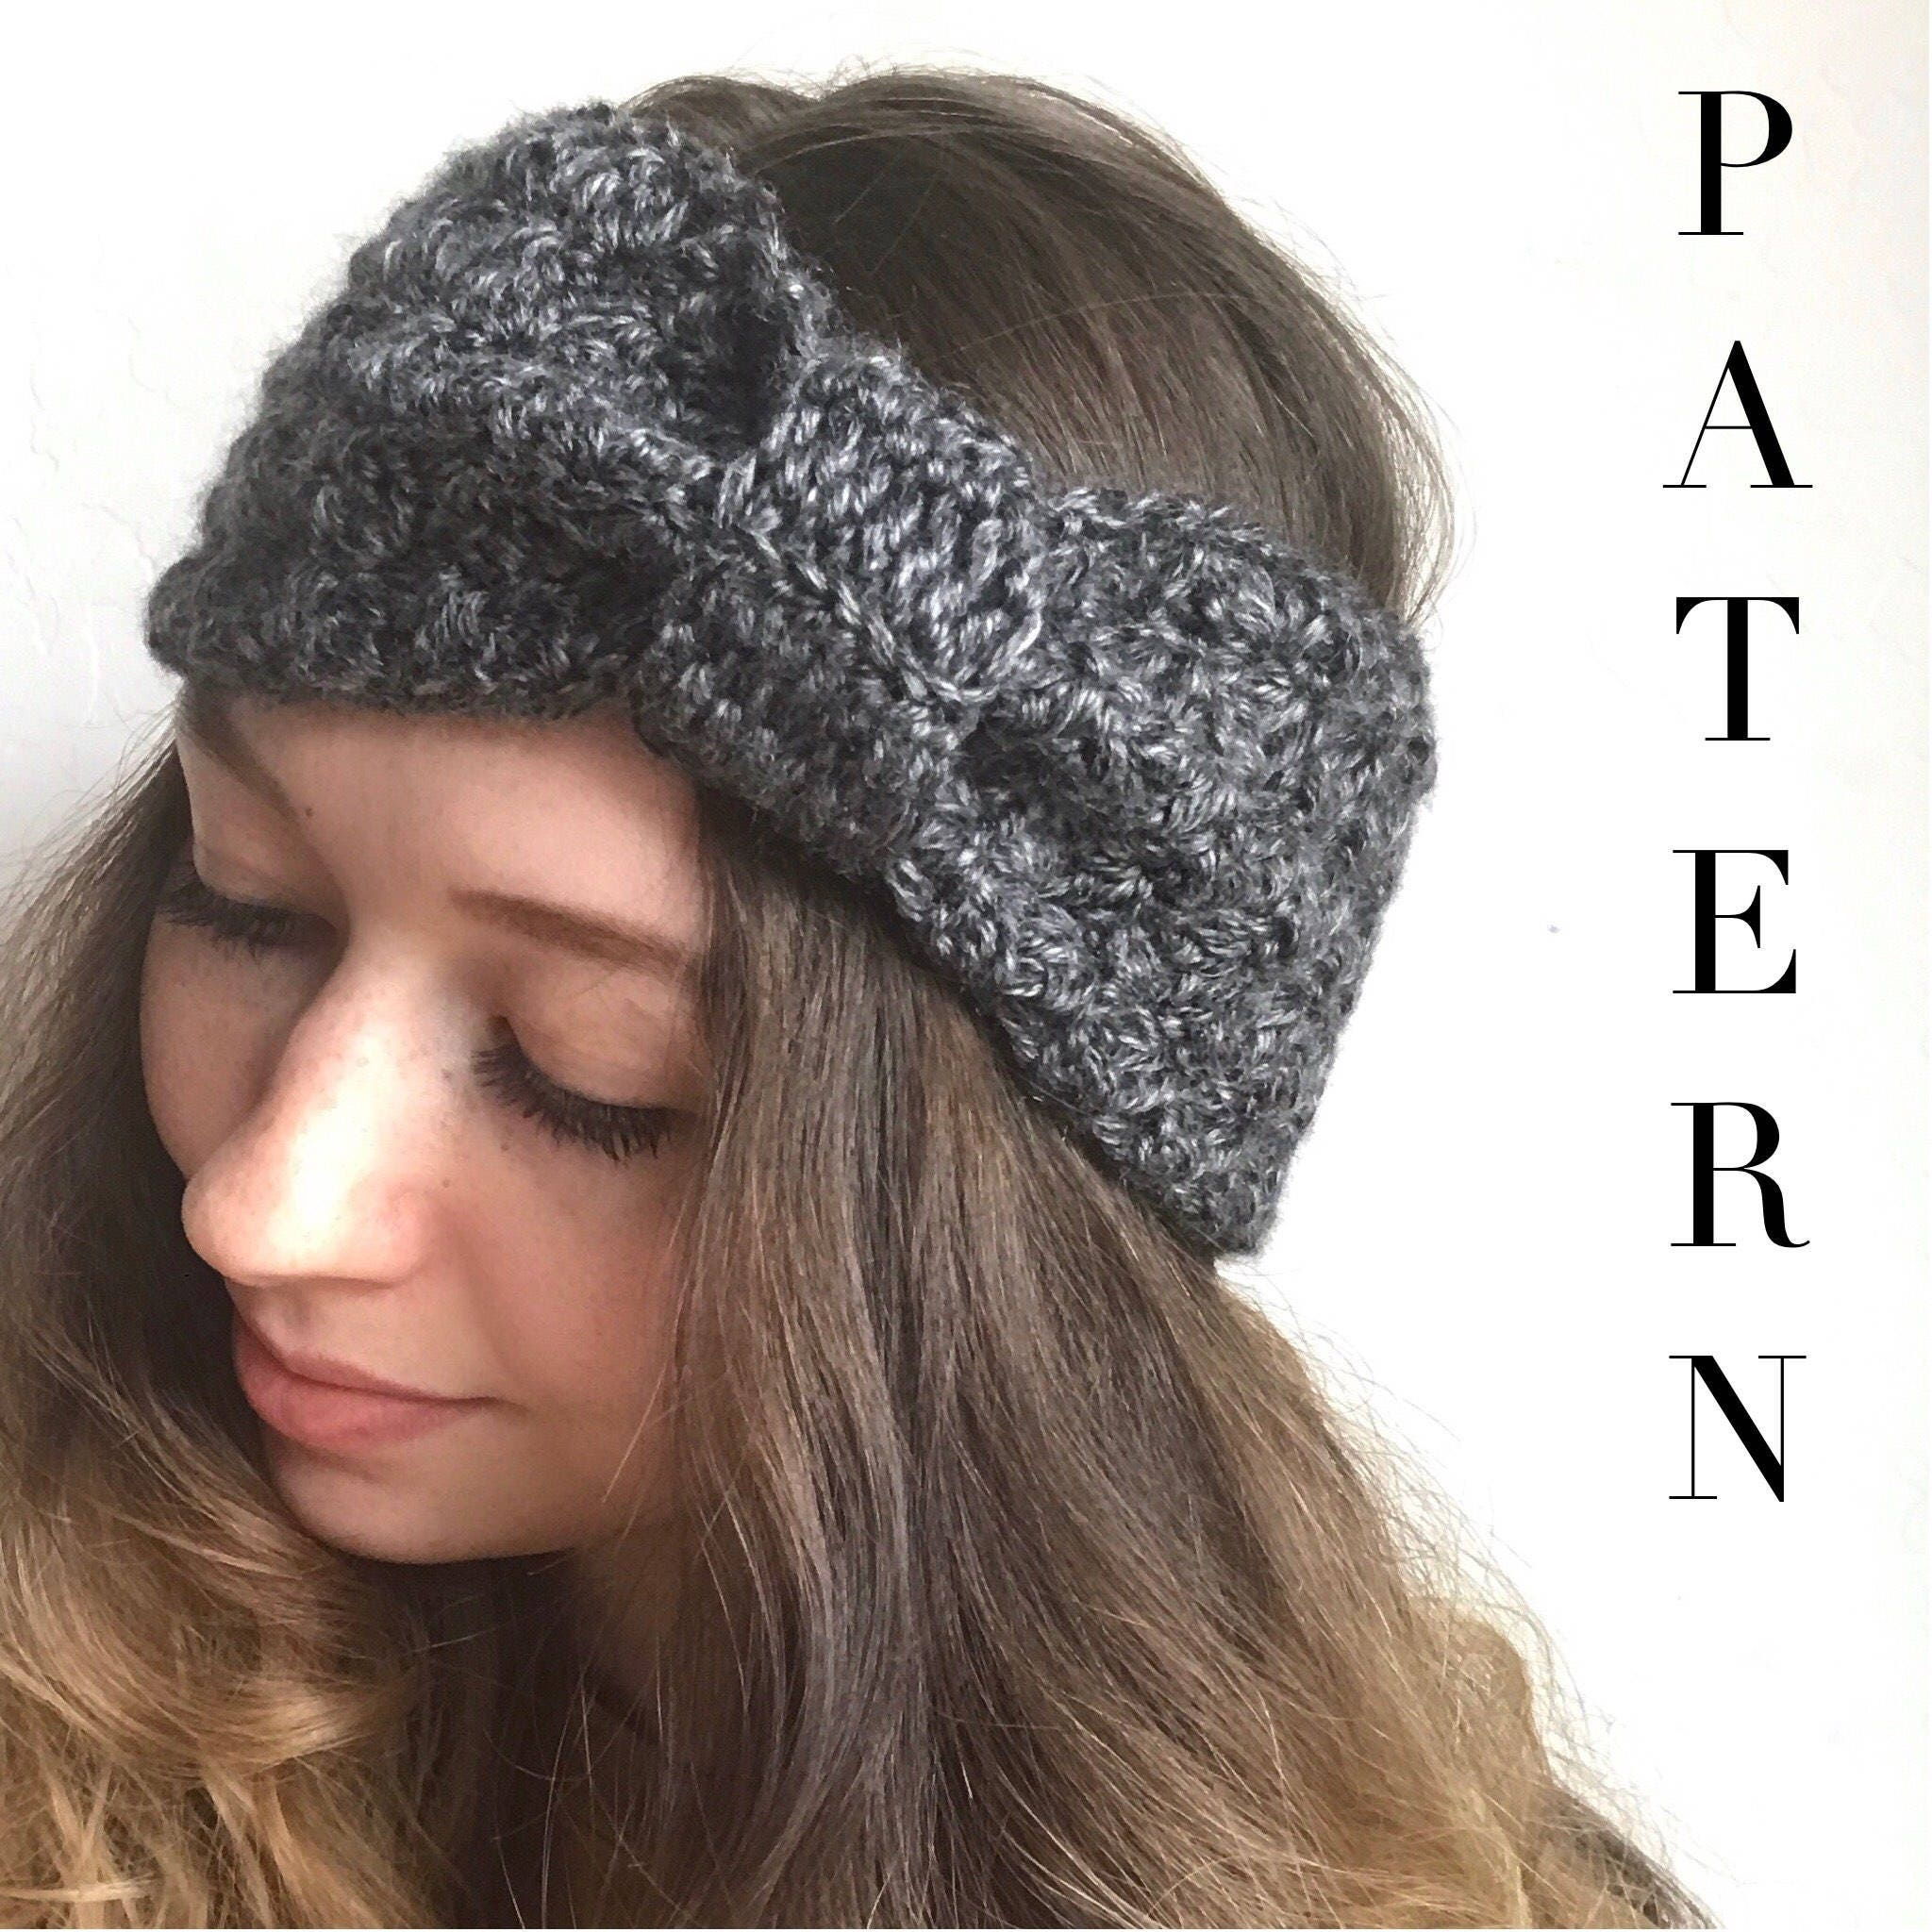 Crochet headband pattern the nora ear warmer boho crochet this is a digital file bankloansurffo Choice Image